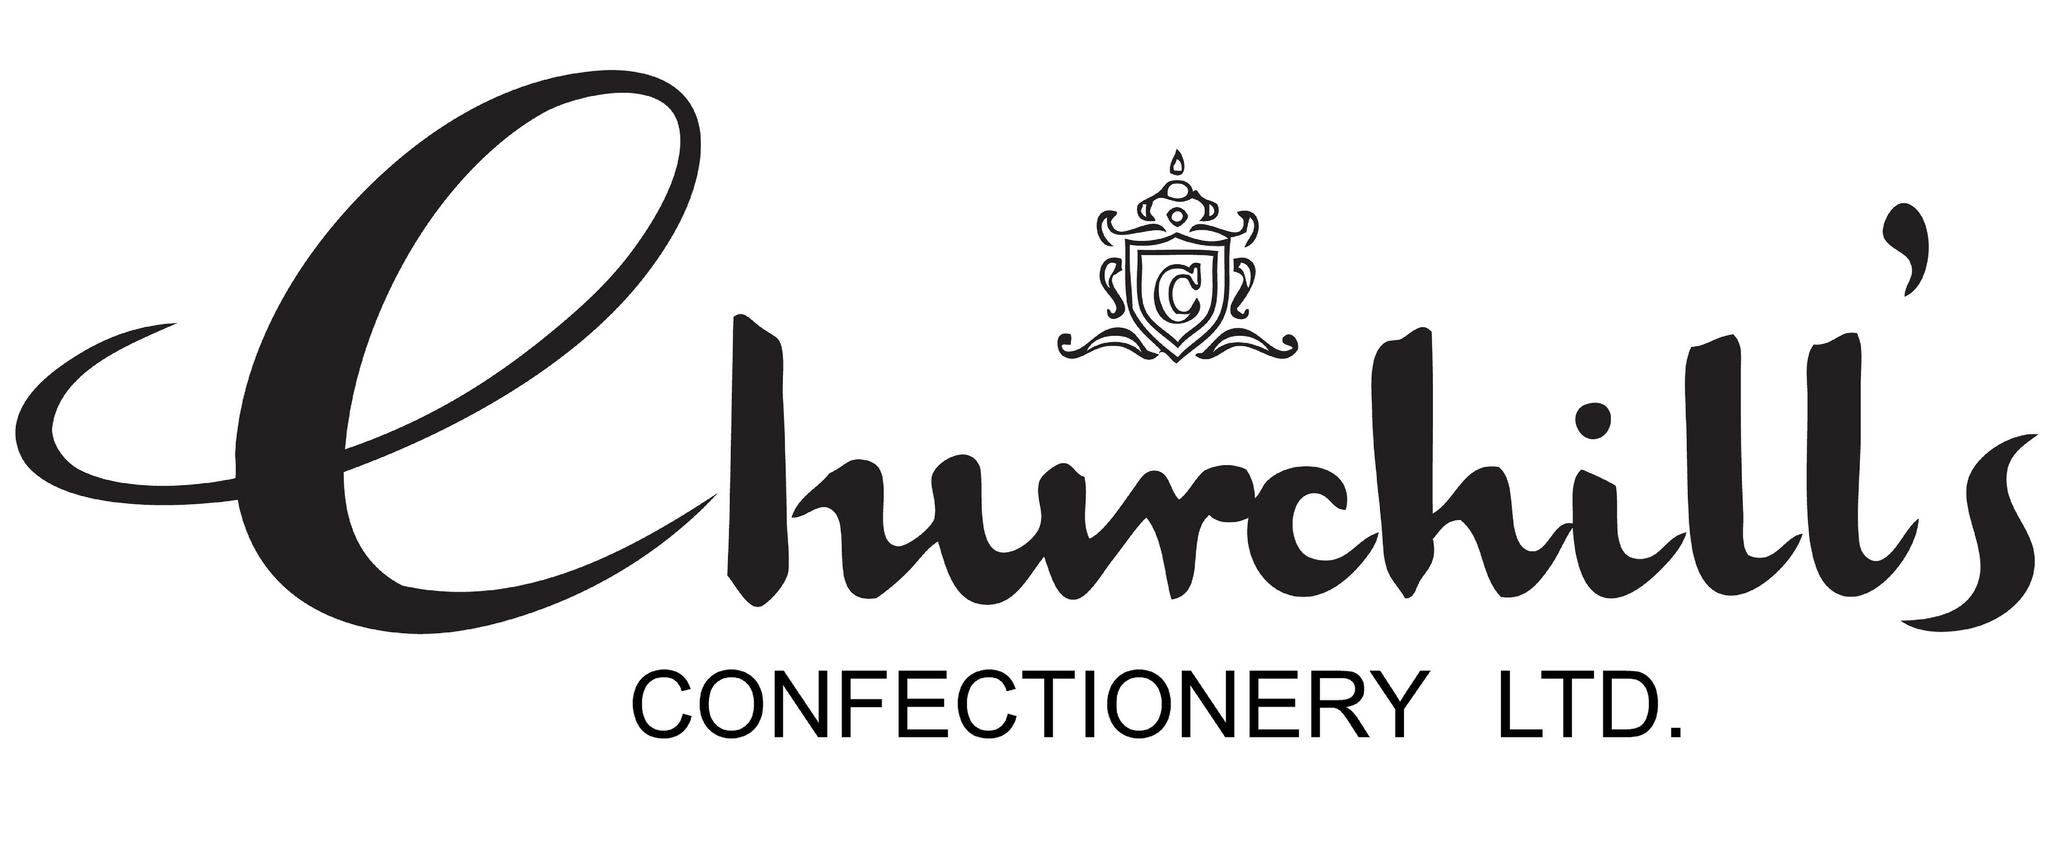 Churchill's Confectionery Ltd